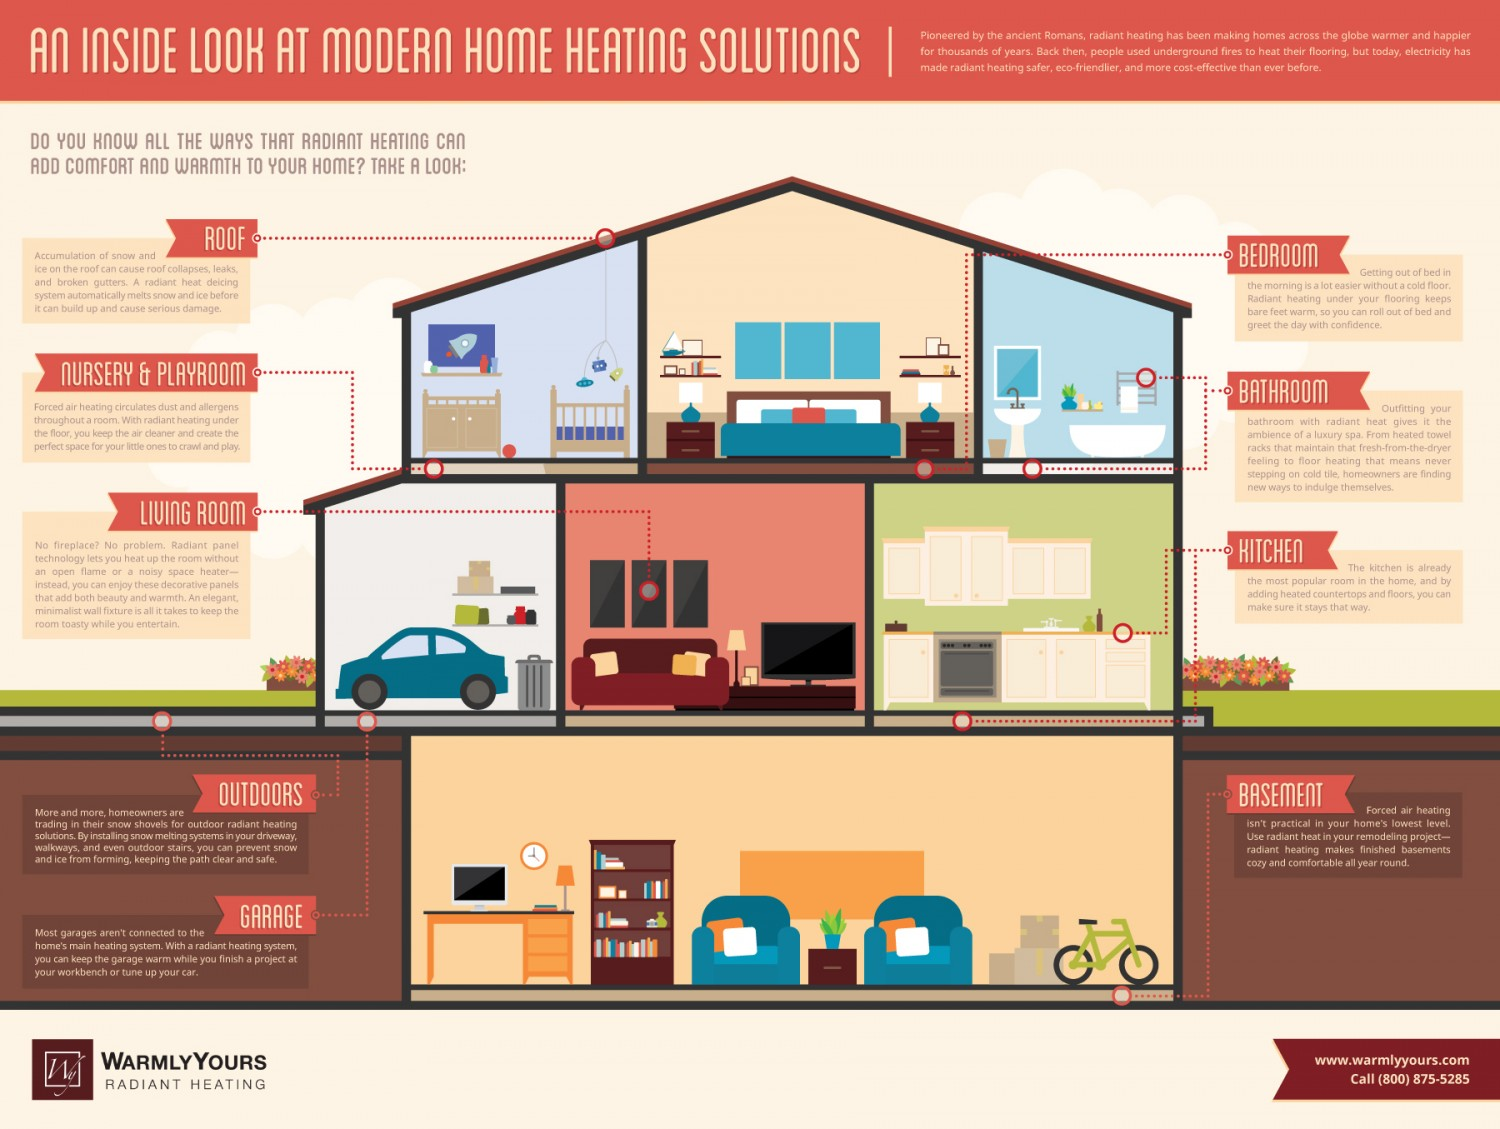 an-inside-look-at-modern-home-heating-solutions